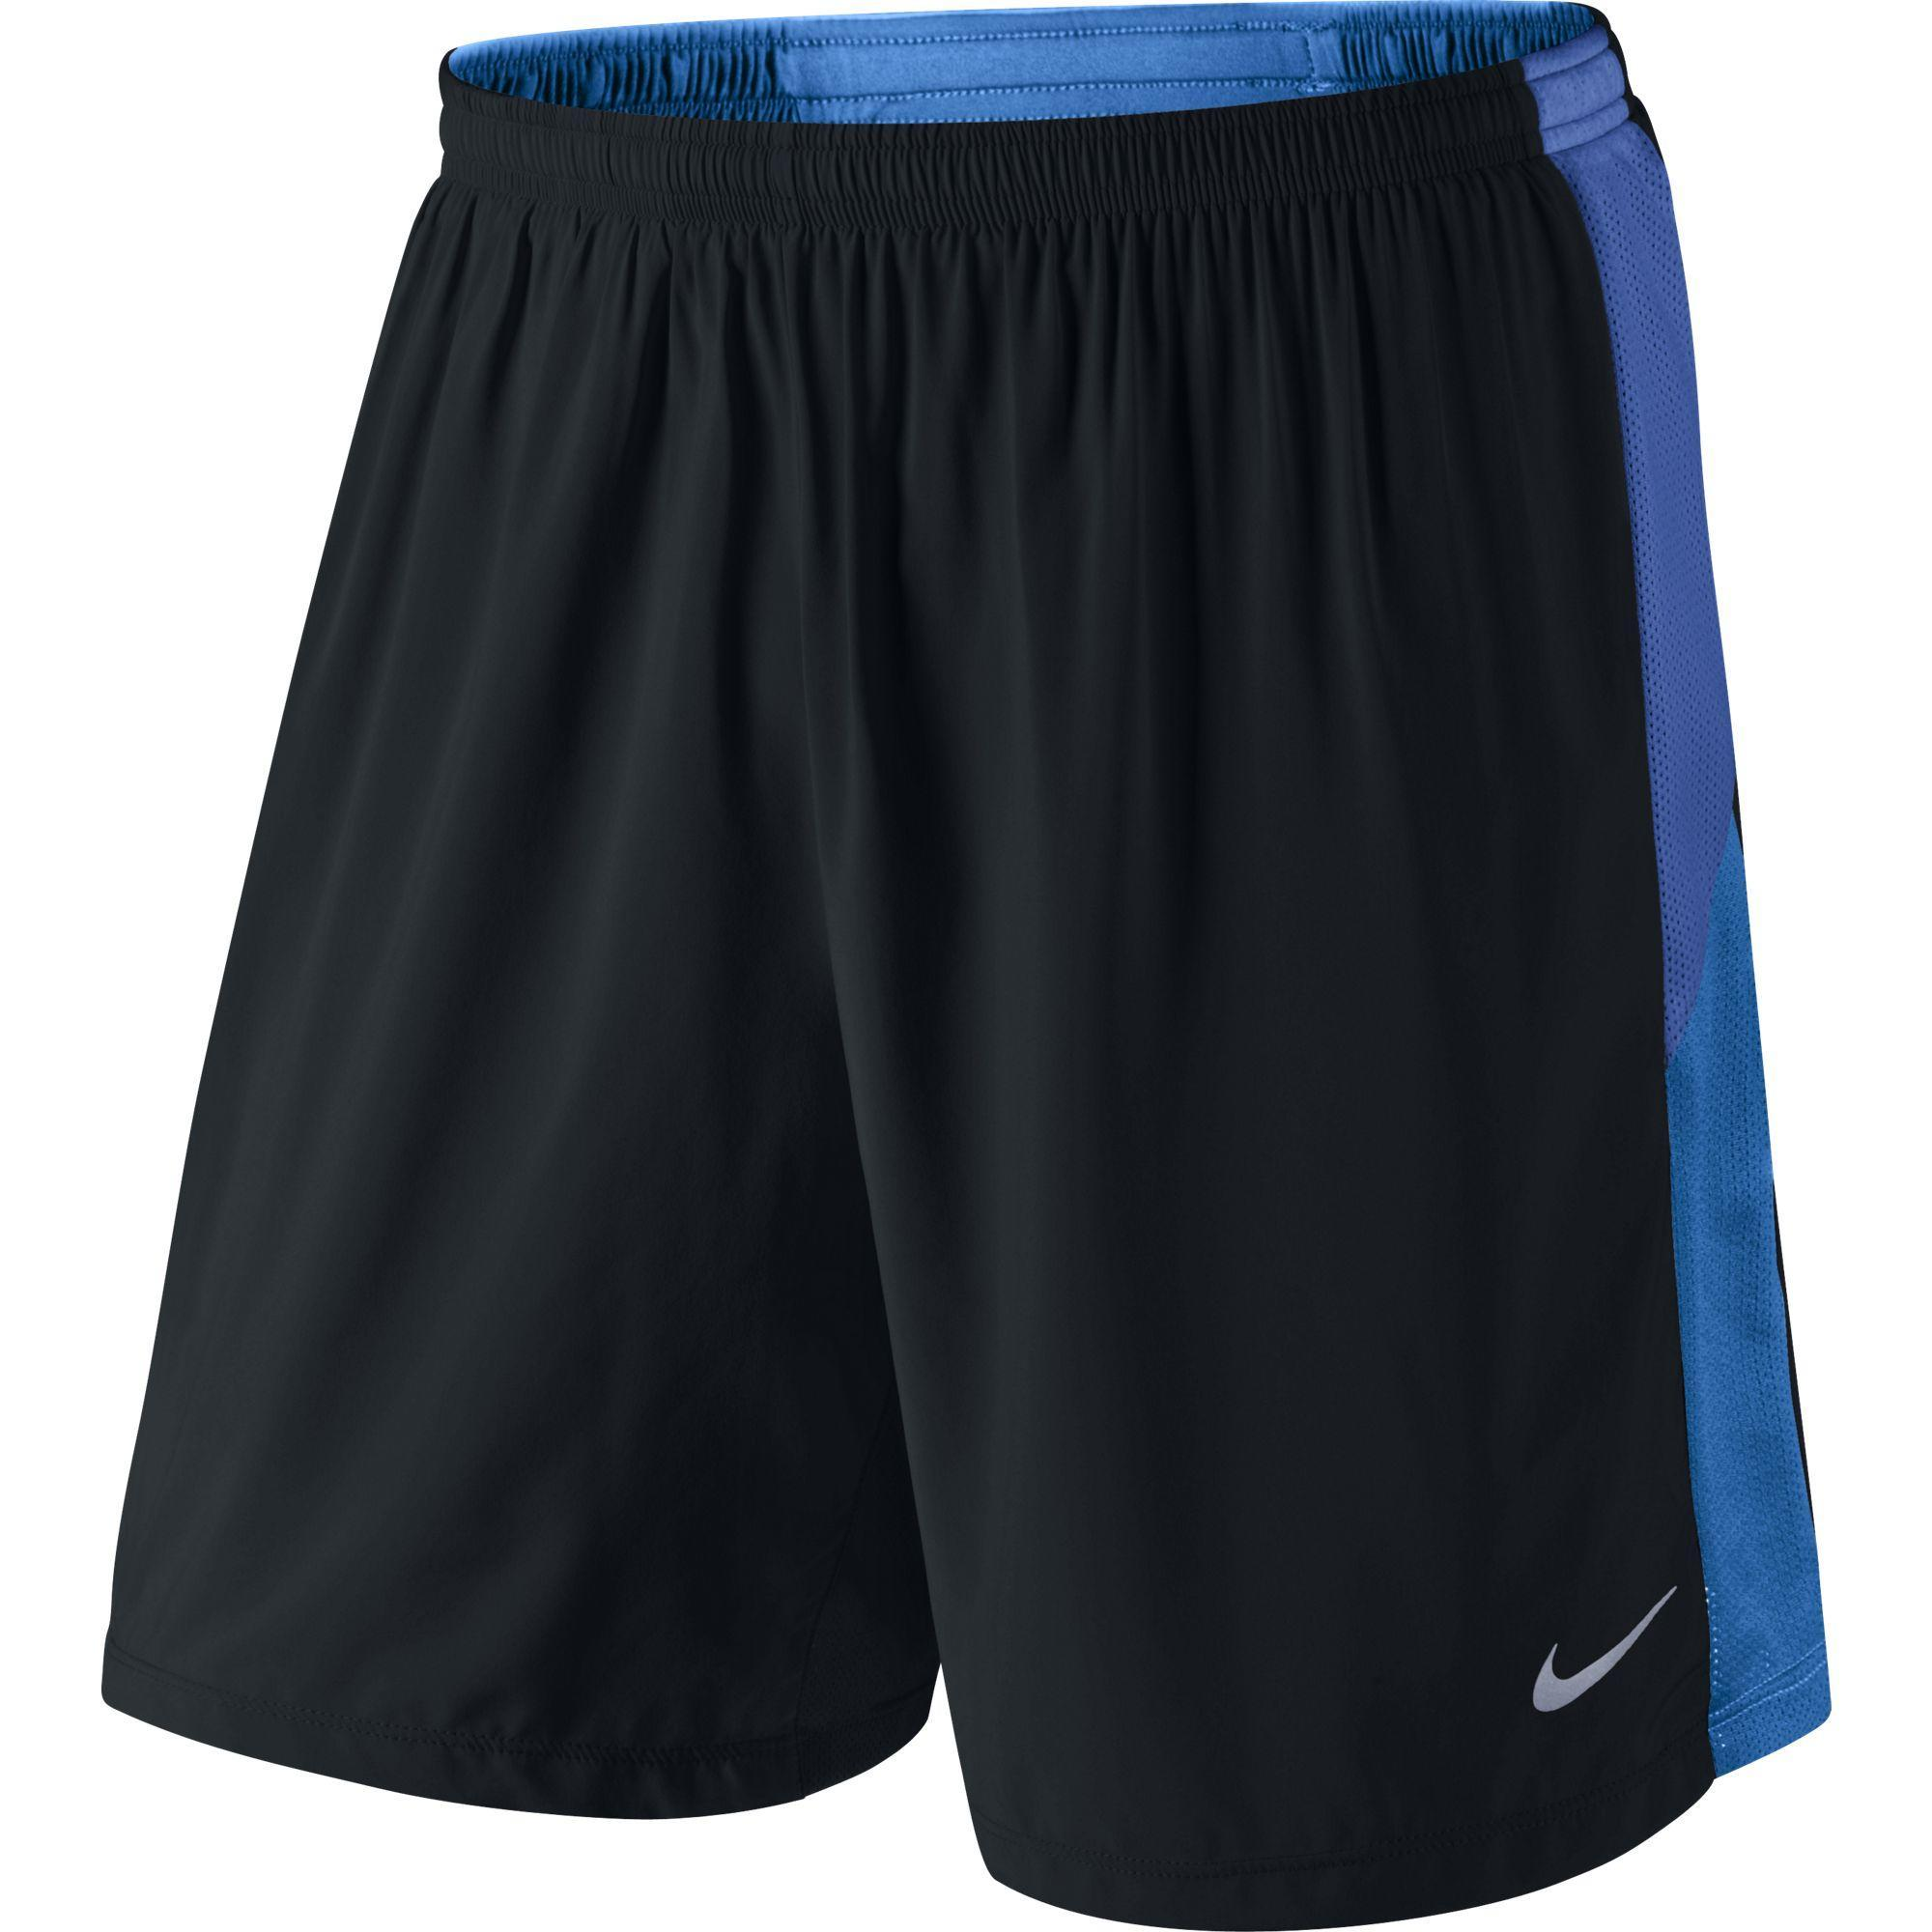 "Nike Mens 7"" Pursuit 2-in-1 Shorts - Black/Blue ..."